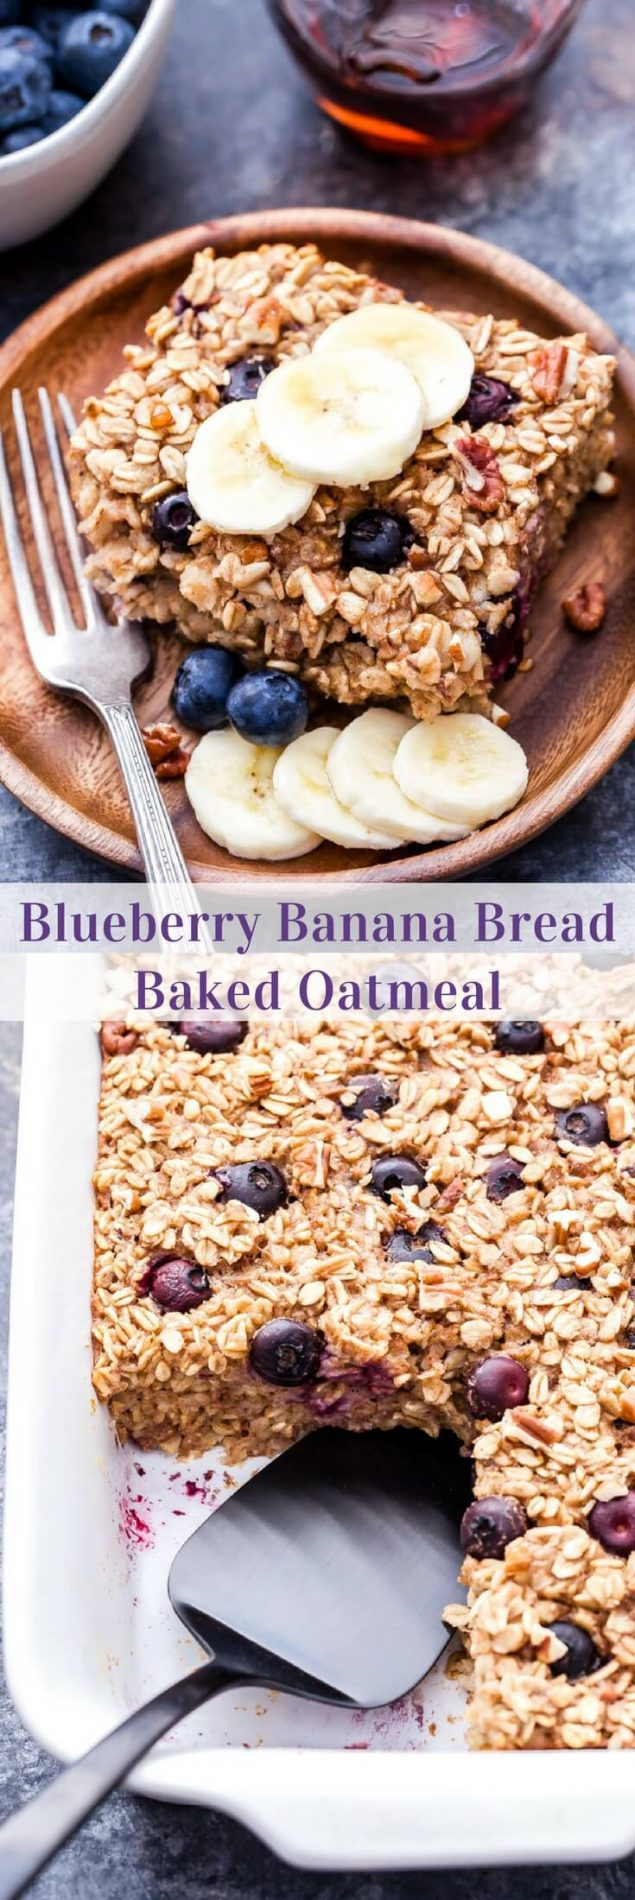 Get your morning started with this easy and satisfying Blueberry Banana Bread Baked Oatmeal! Delicious right out of the oven and it makes great leftovers throughout the week. #oatmeal #bakedoatmeal #blueberries #banana #glutenfree #breakfast